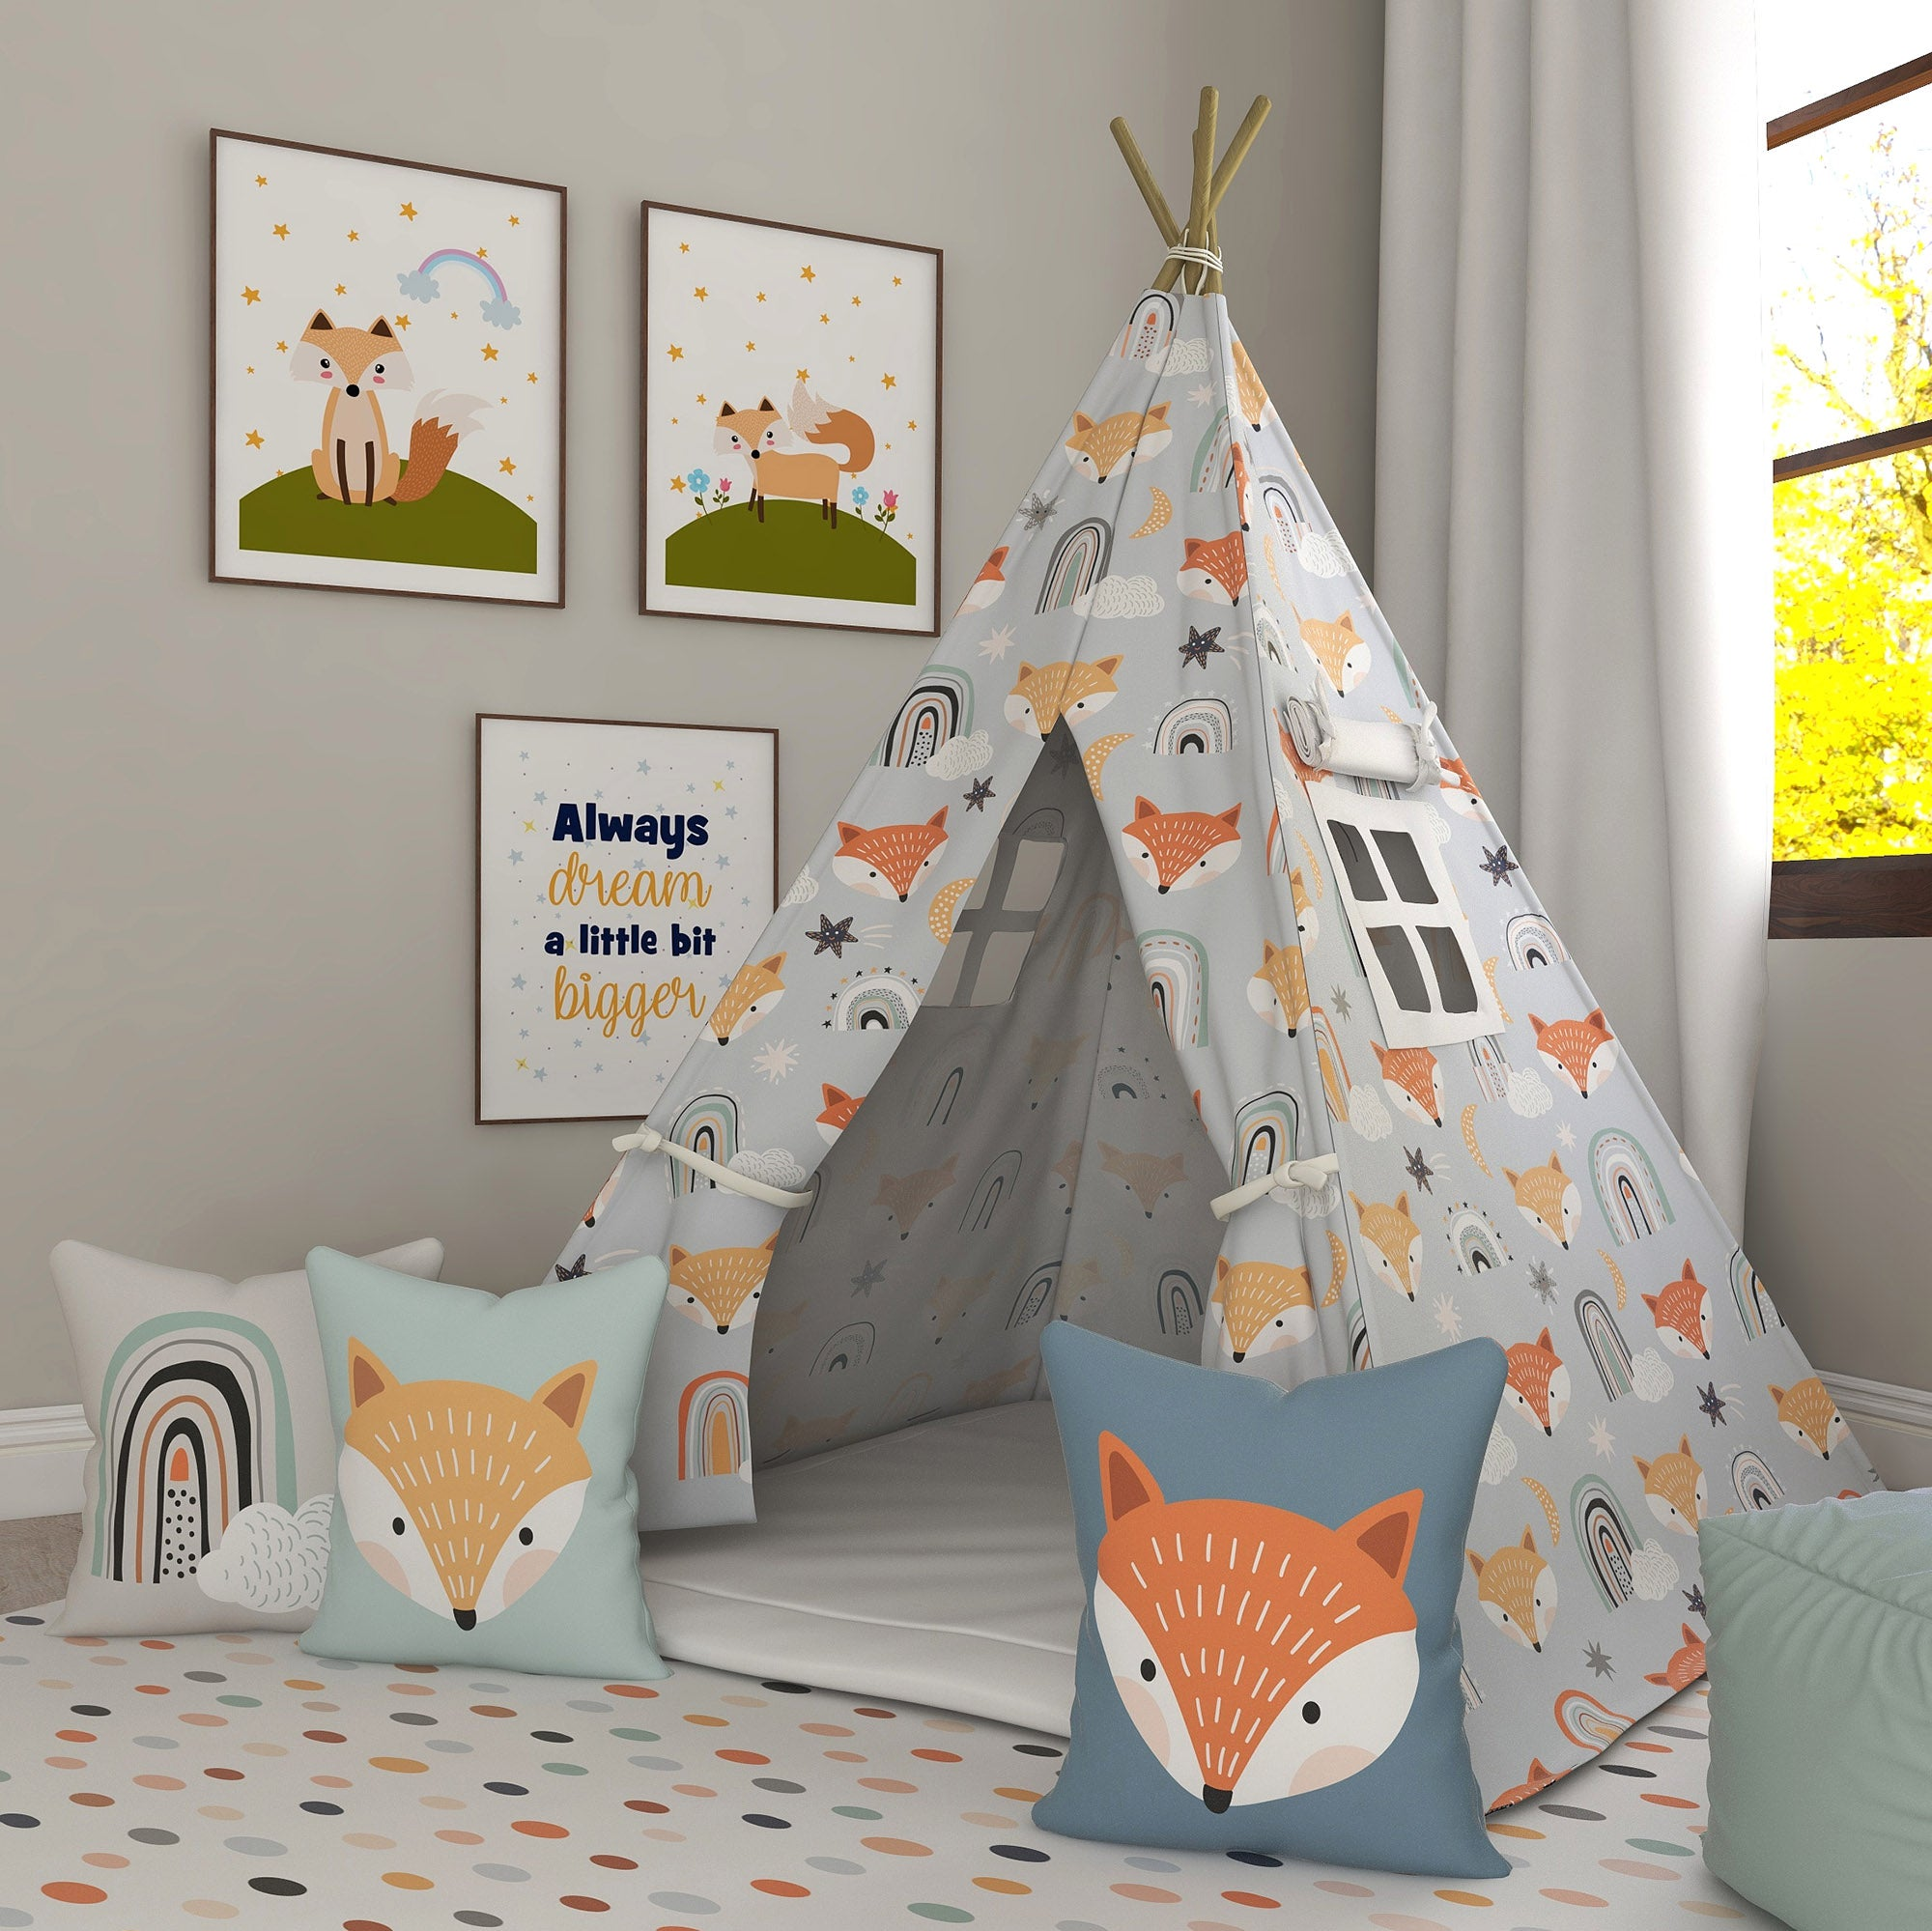 Kids Teepee, Fox Decor Themed Room - Gone In The Wild Collection